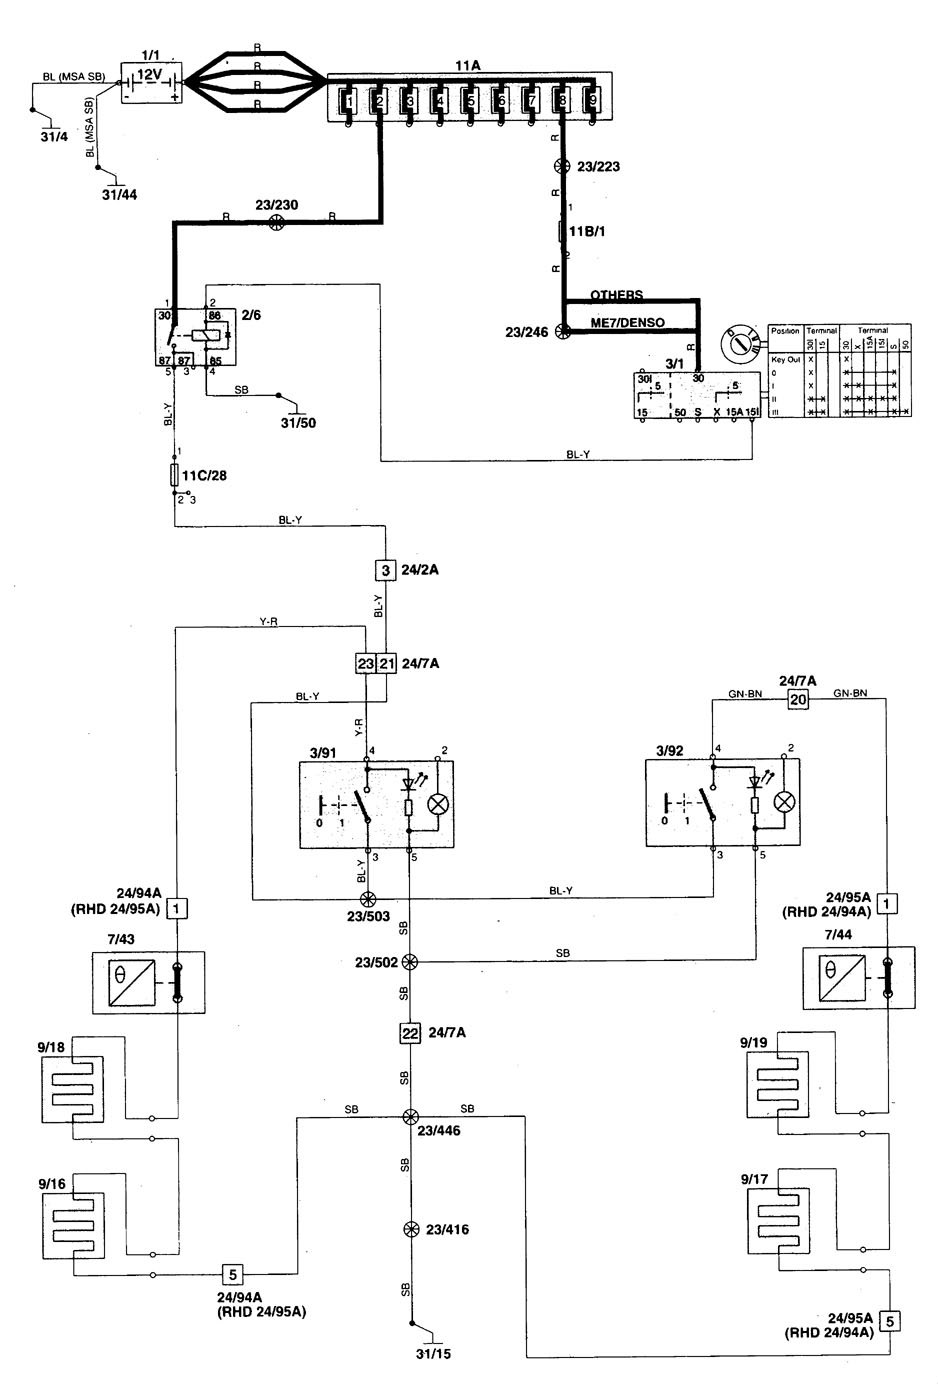 Wiring Diagram Volvo V70 1998 Reveolution Of 98 Mazda 626 C70 Content Resource U2022 Rh Uberstuff Co For